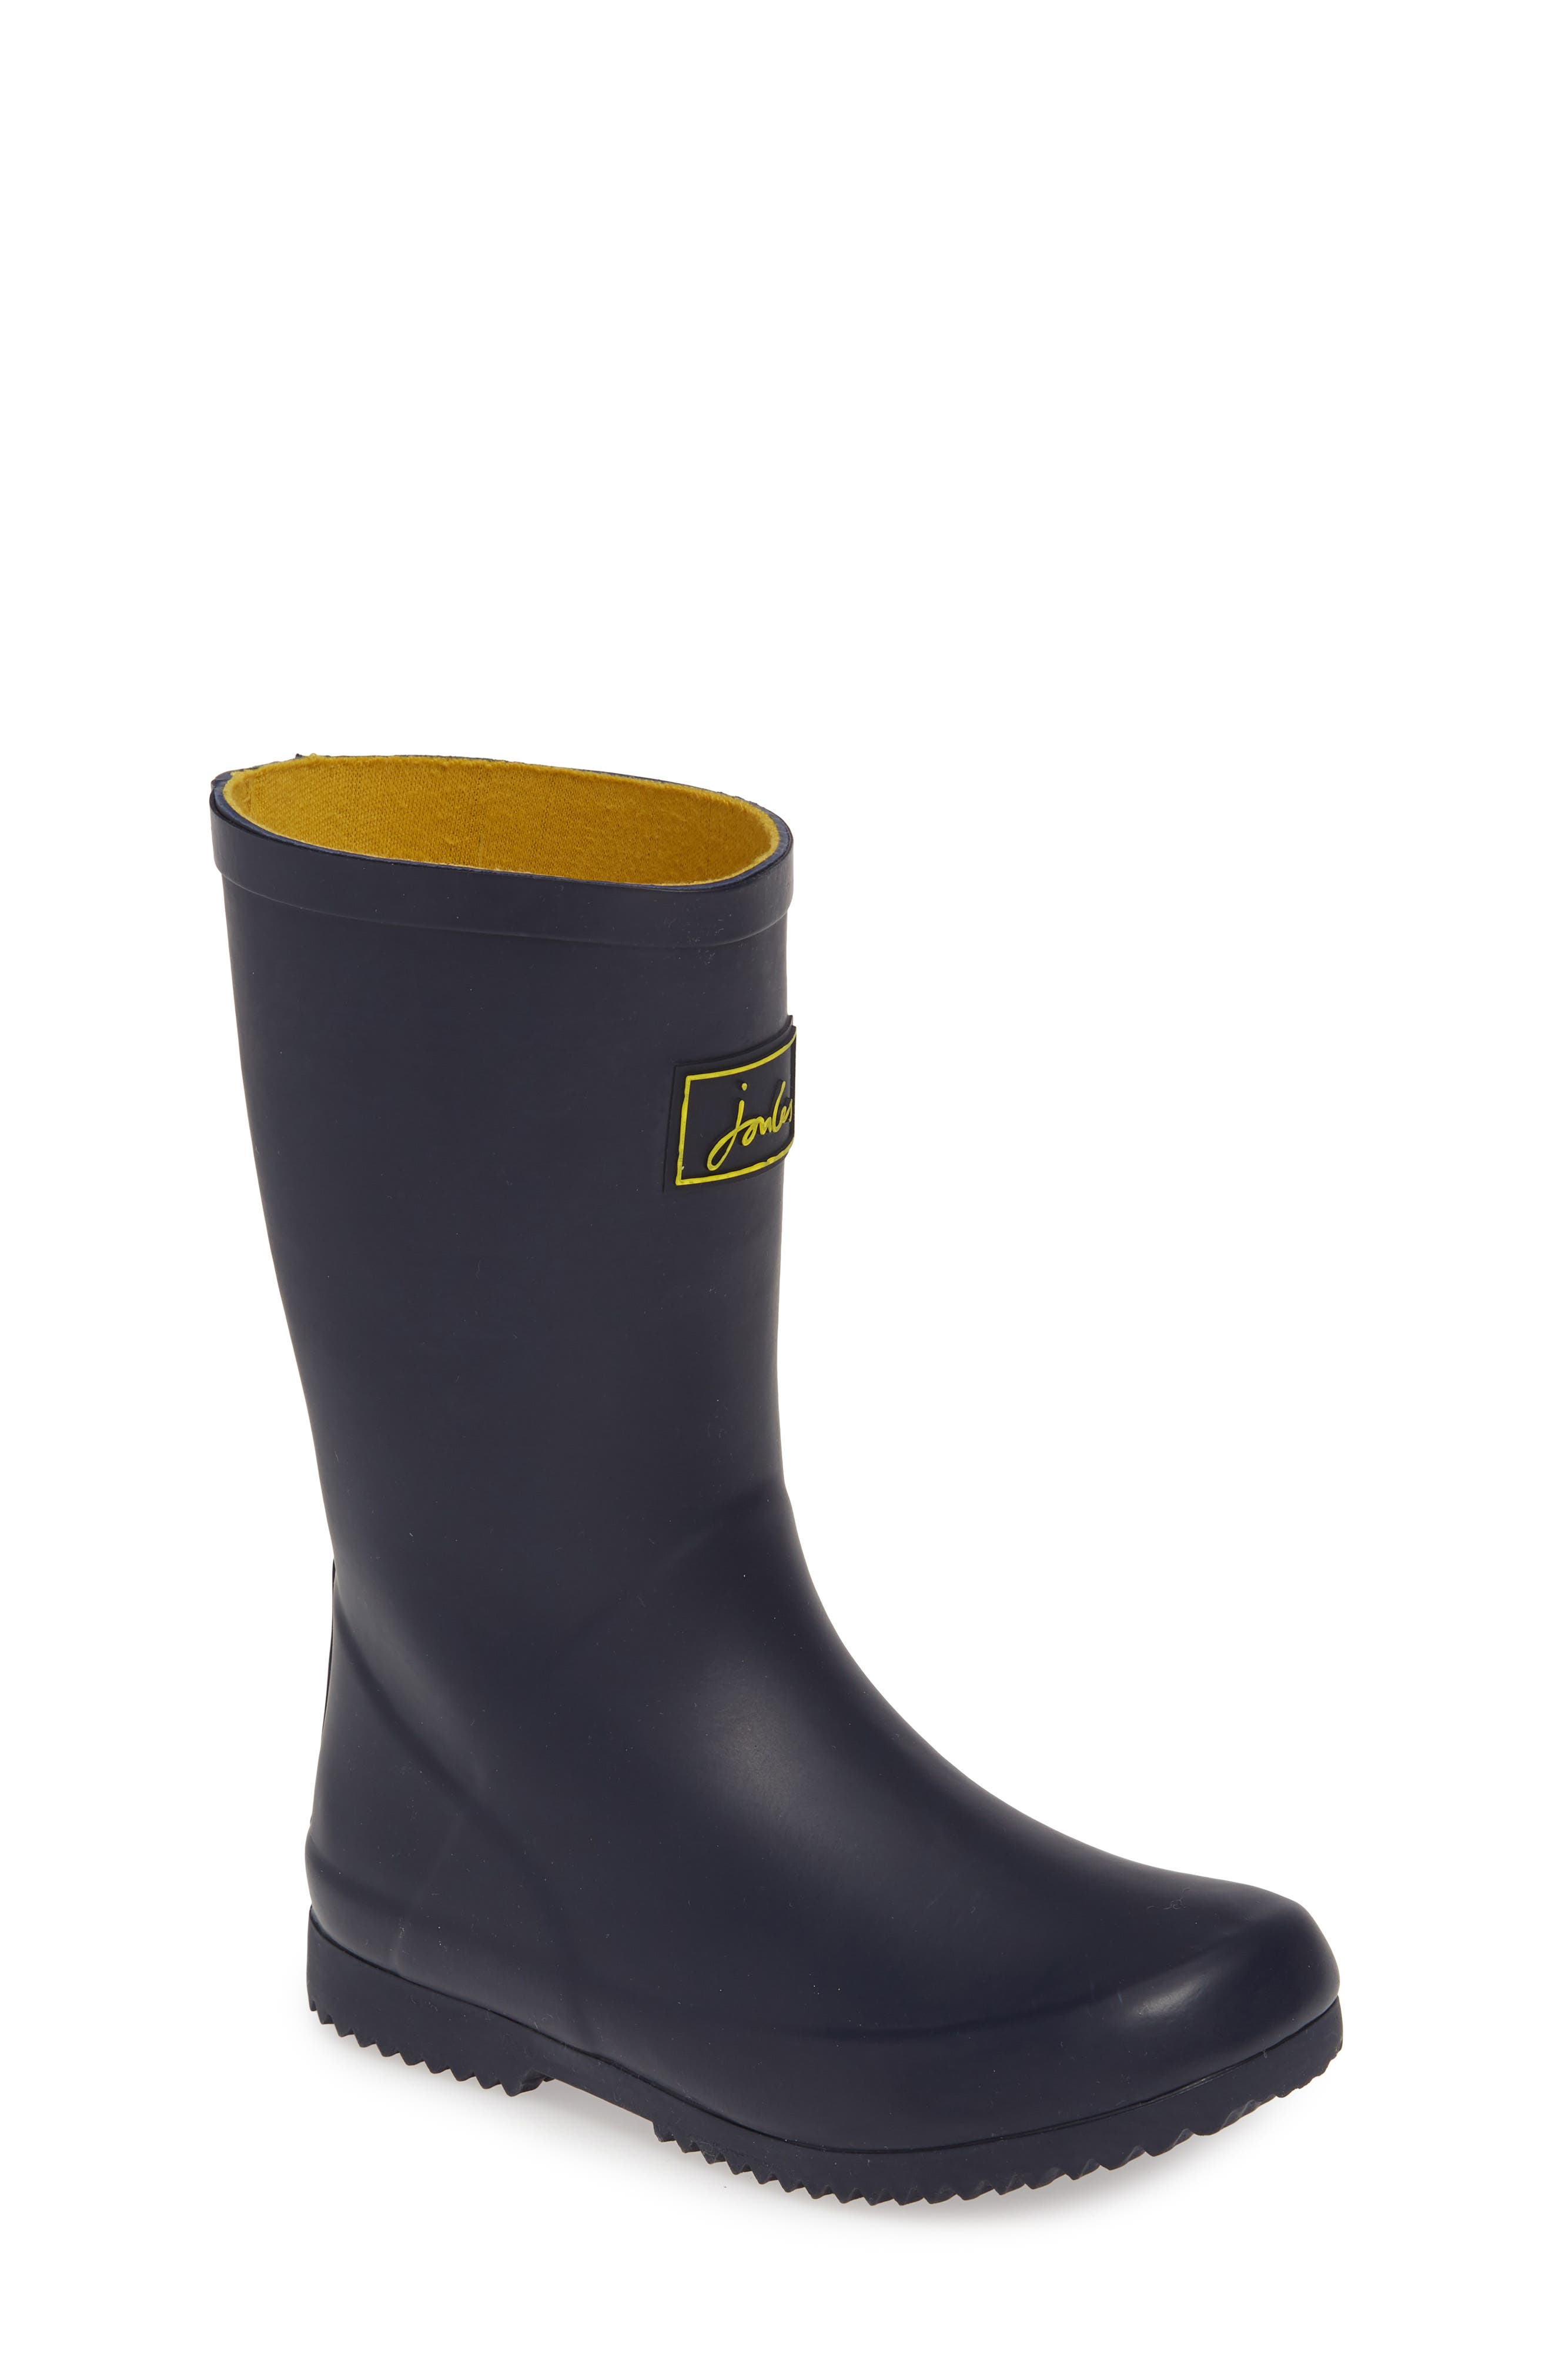 JOULES, Roll Up Waterproof Rain Boot, Main thumbnail 1, color, FRENCH NAVY